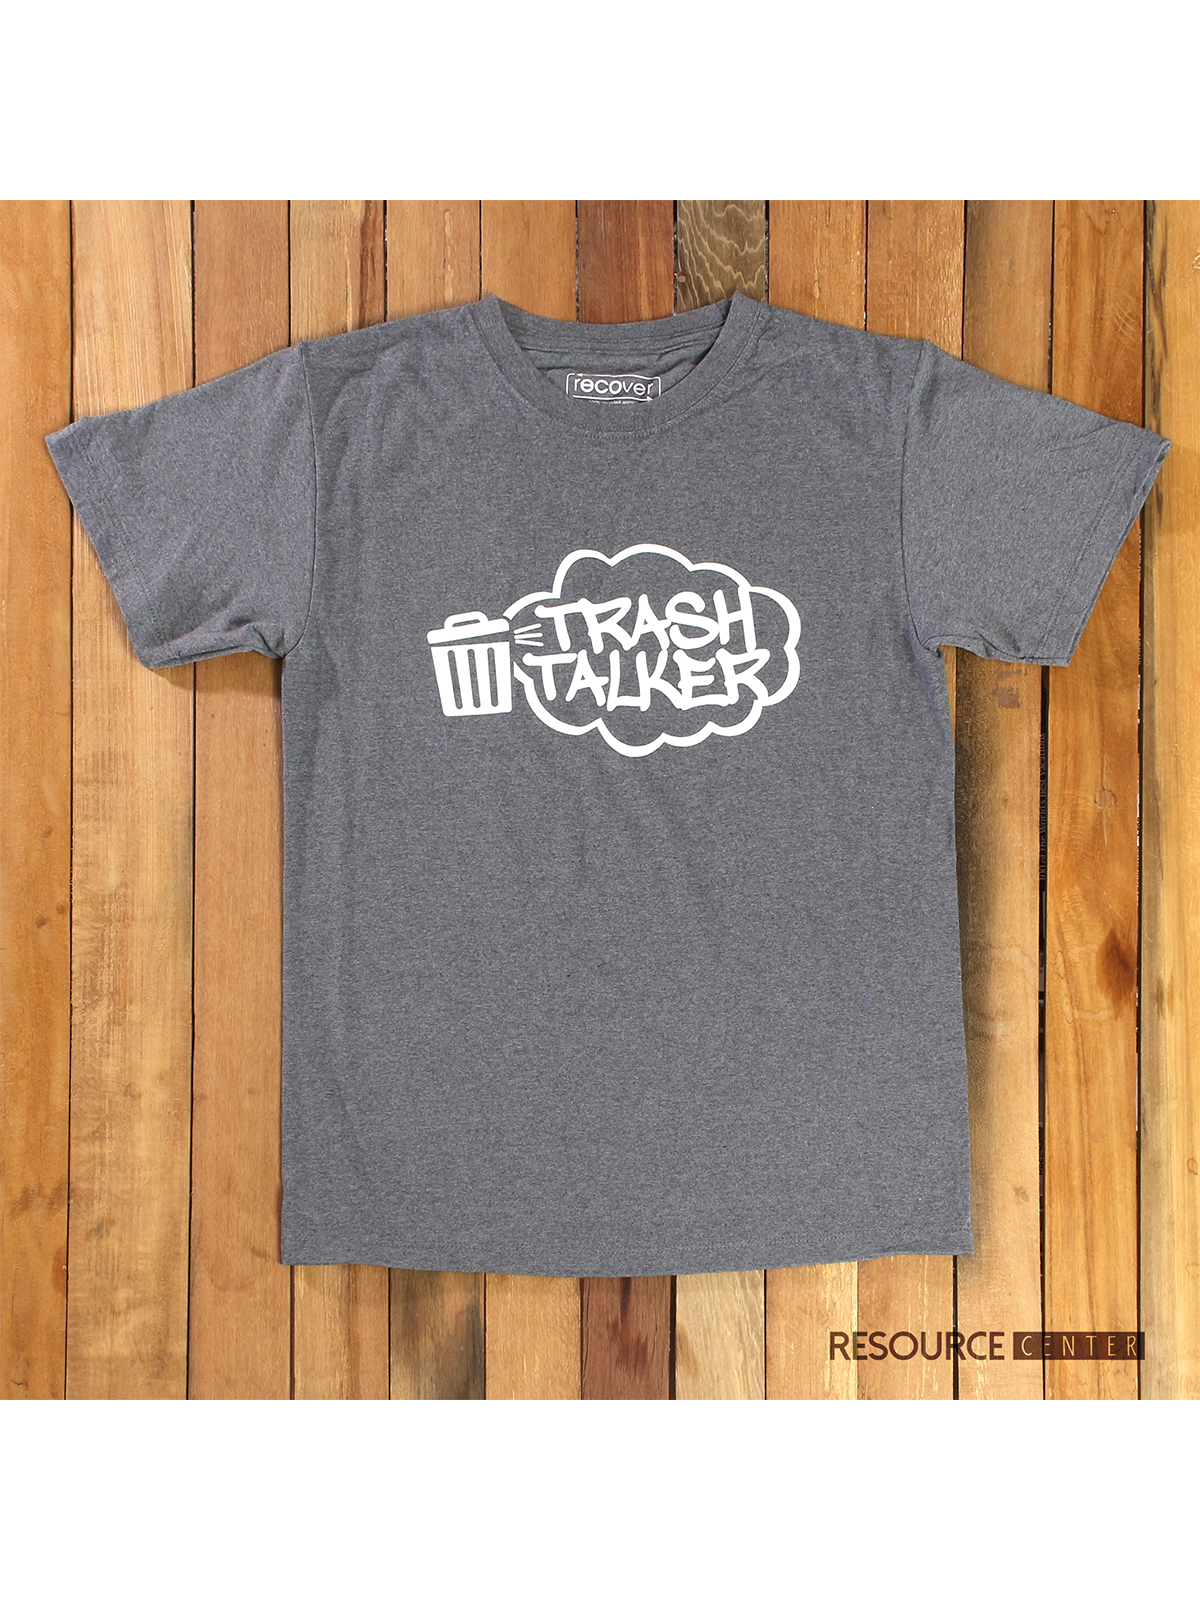 SUSTAINABLE T-SHIRT - XL - DARK GREY - TRASH TALKER